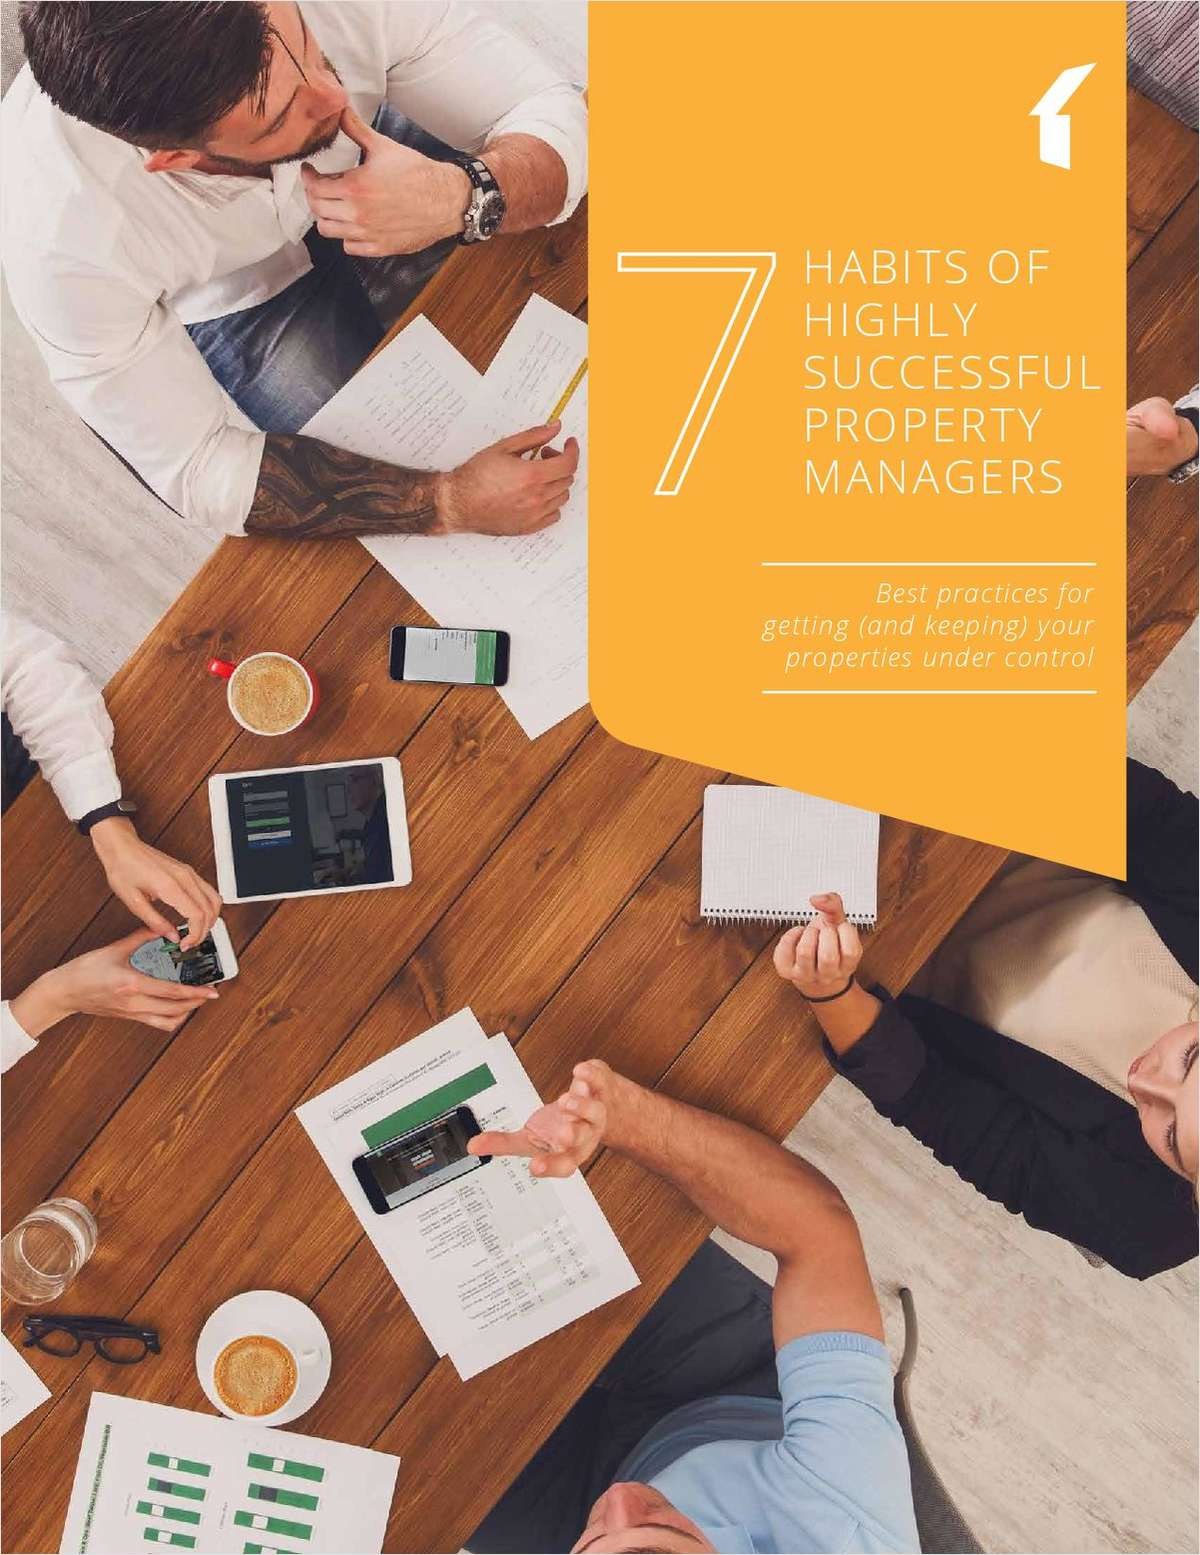 The 7 Habits of Highly Successful Property Managers